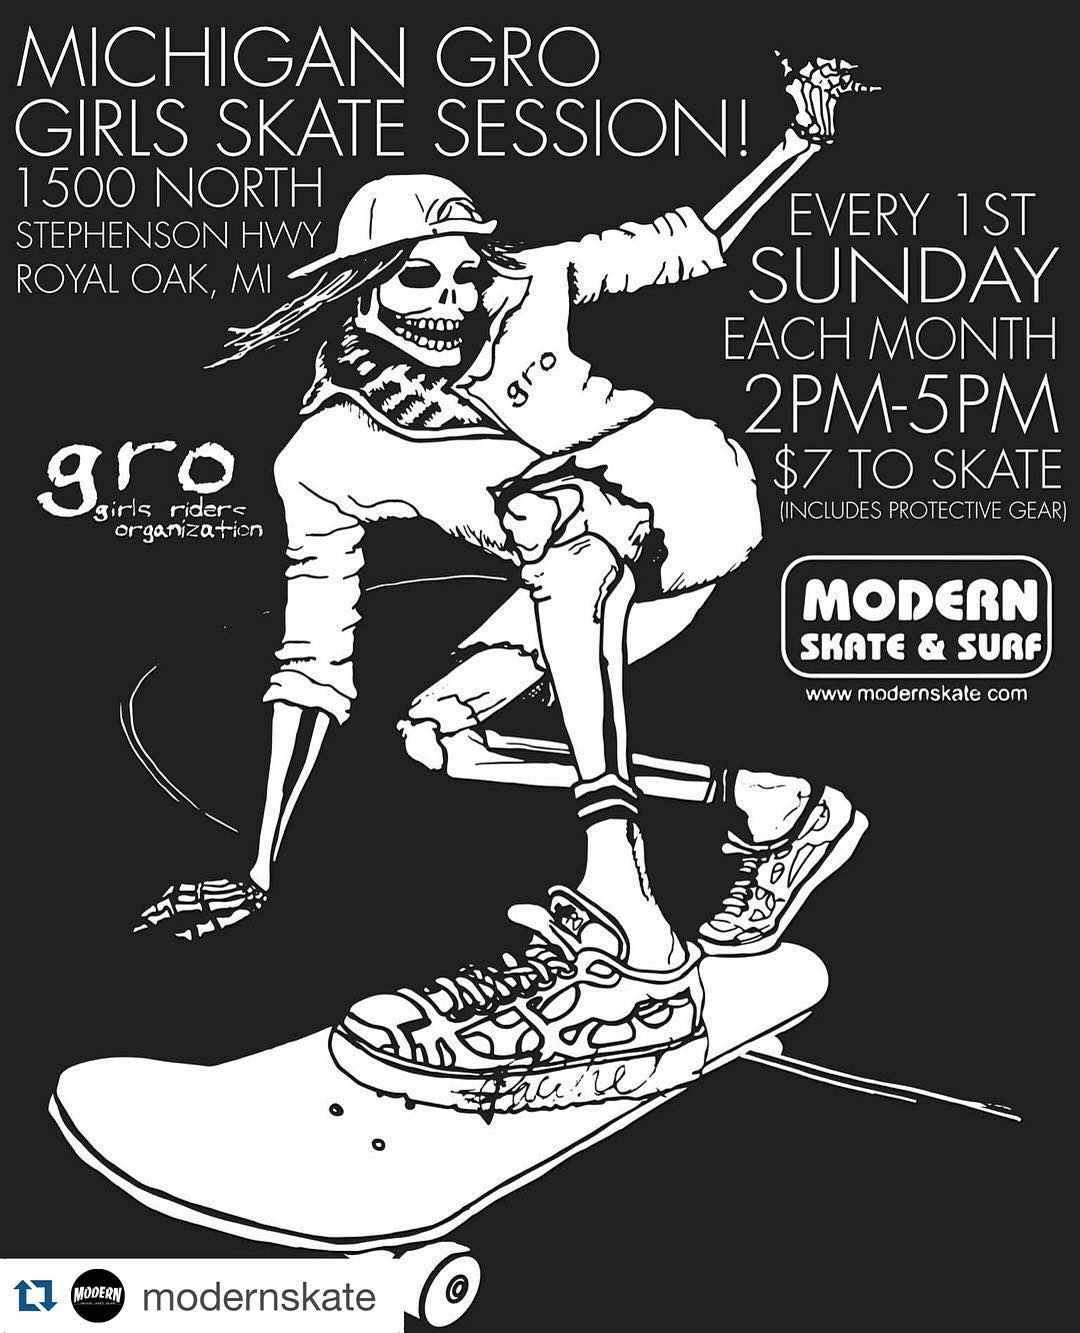 Hey ladies! The @michigangrocrew session is this Sunday @modernskate from 2pm-5pm. Its only $7 for all you girls that shred #GROsession #modernskatepark #ridetrue #ladiesofshred #killinitsoftly  #likeagirl #likeaboss #skatergirl #girlsonboard #gromgirl...